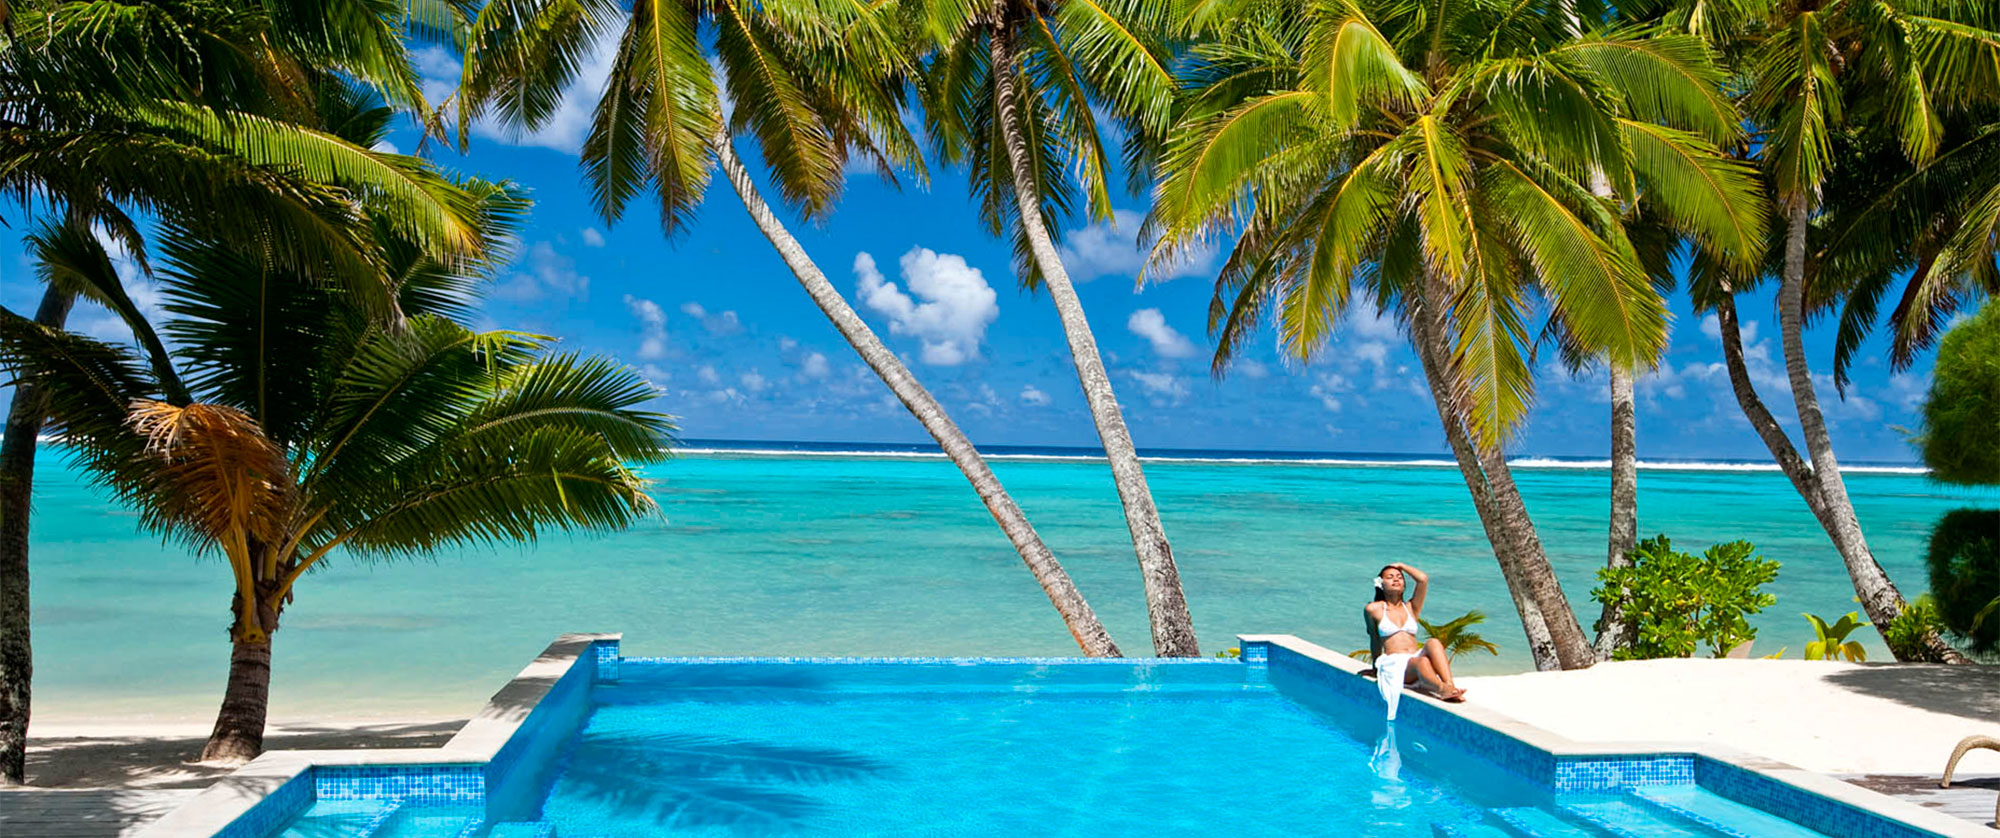 Cook Islands Luxury Beach Getaway - Little Polynesian Resort